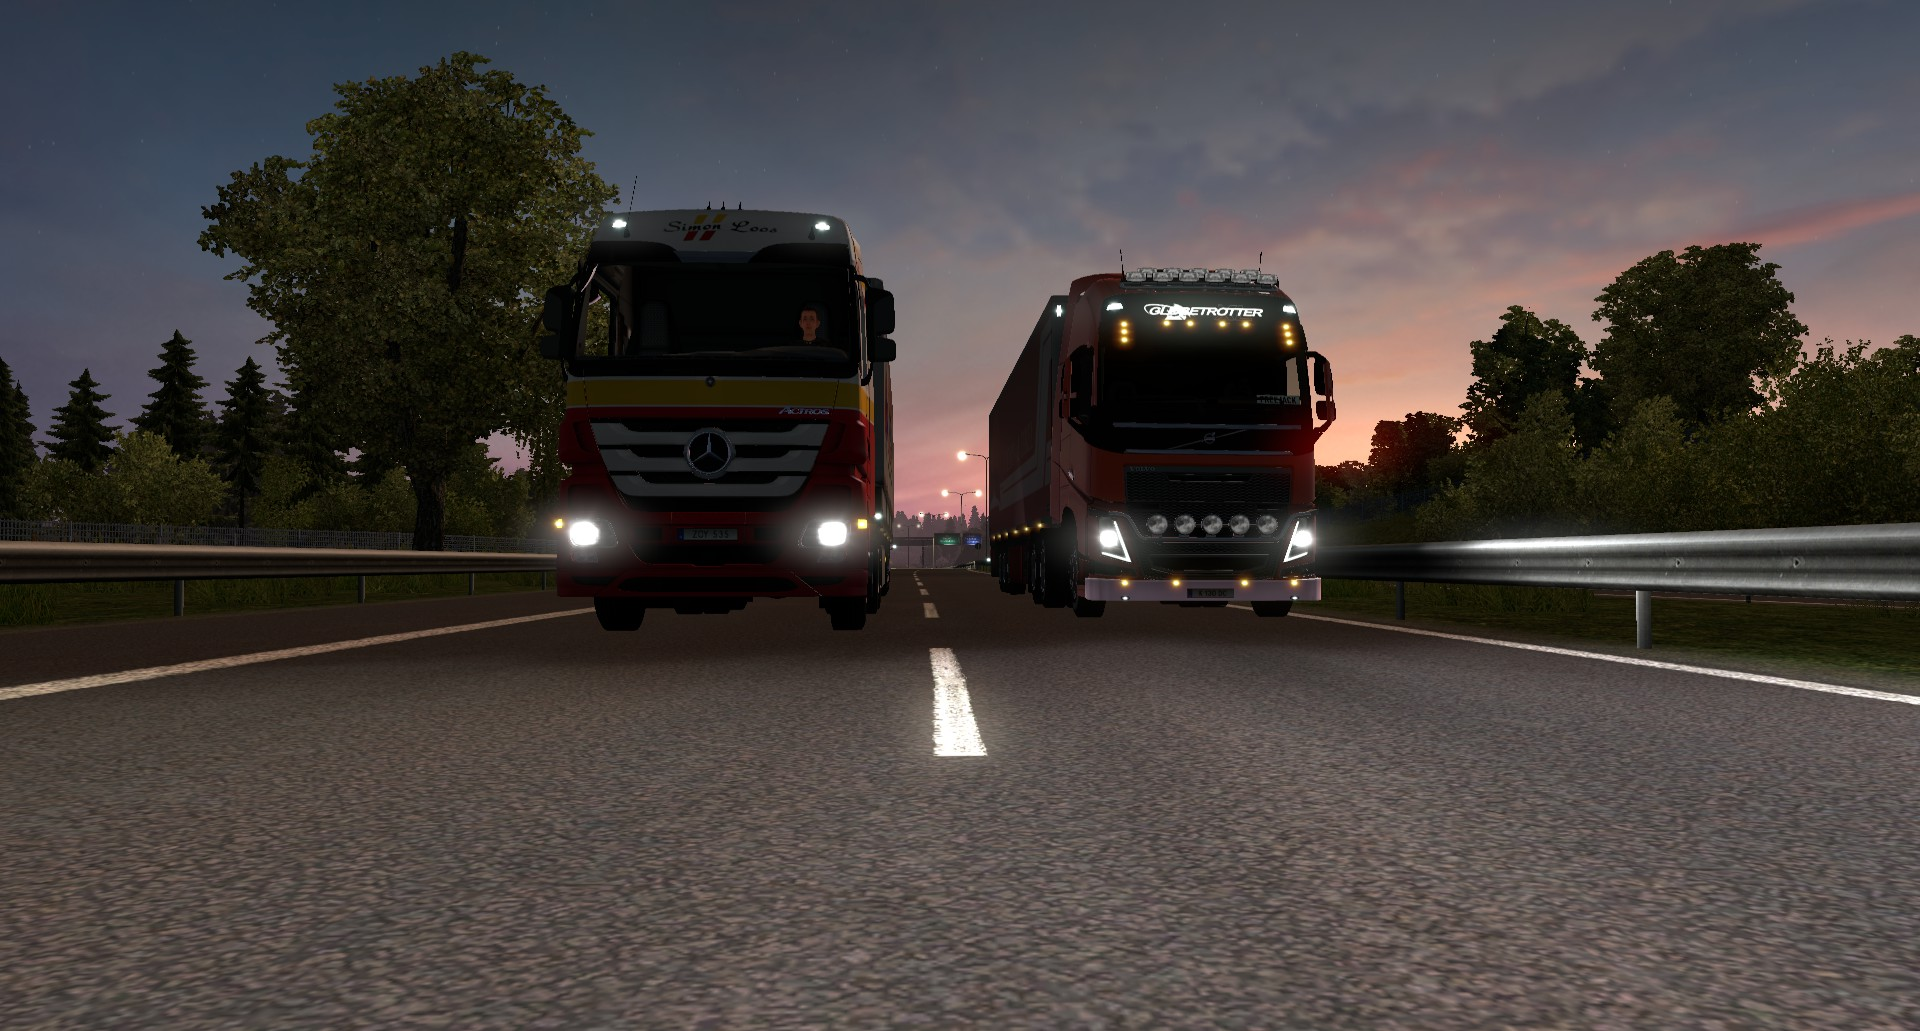 Aux lights on roof and front             :: Euro Truck Simulator 2